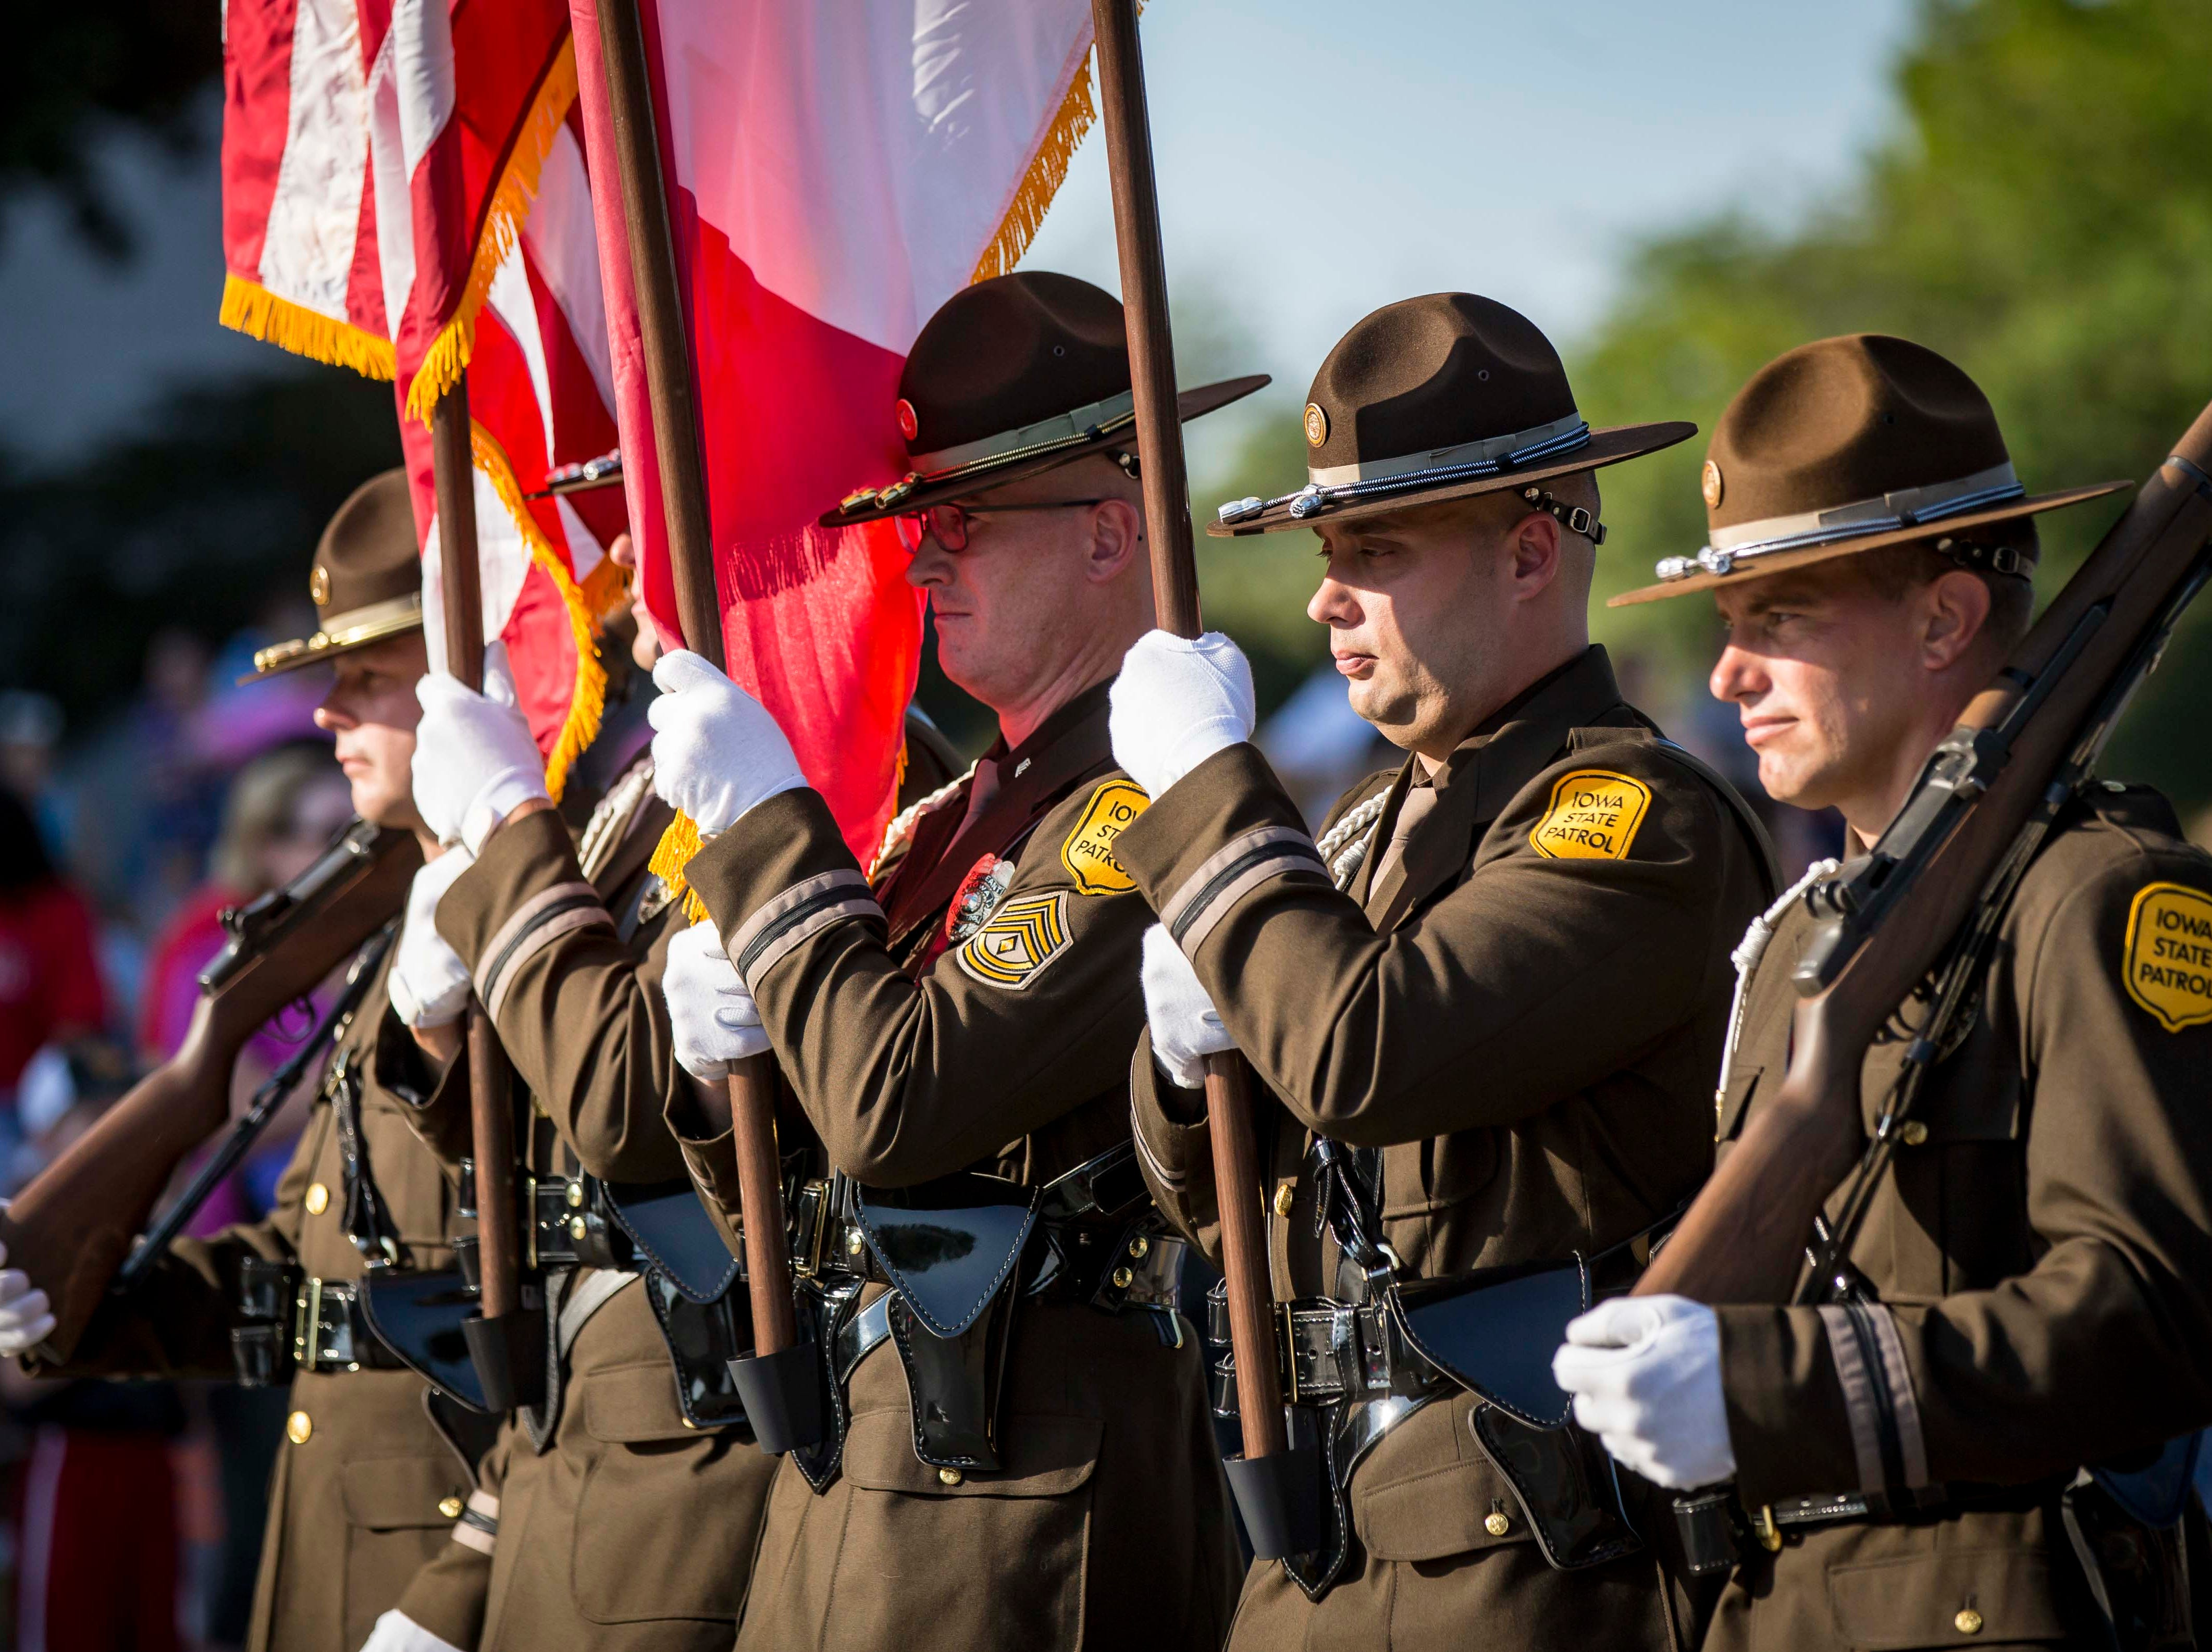 An Iowa State Patrol color guard leads the 2018 Iowa State Fair parade from the Statehouse to downtown Des Moines Wednesday, Aug. 8, 2018. The Iowa State Fair runs from Aug. 9Ð19.